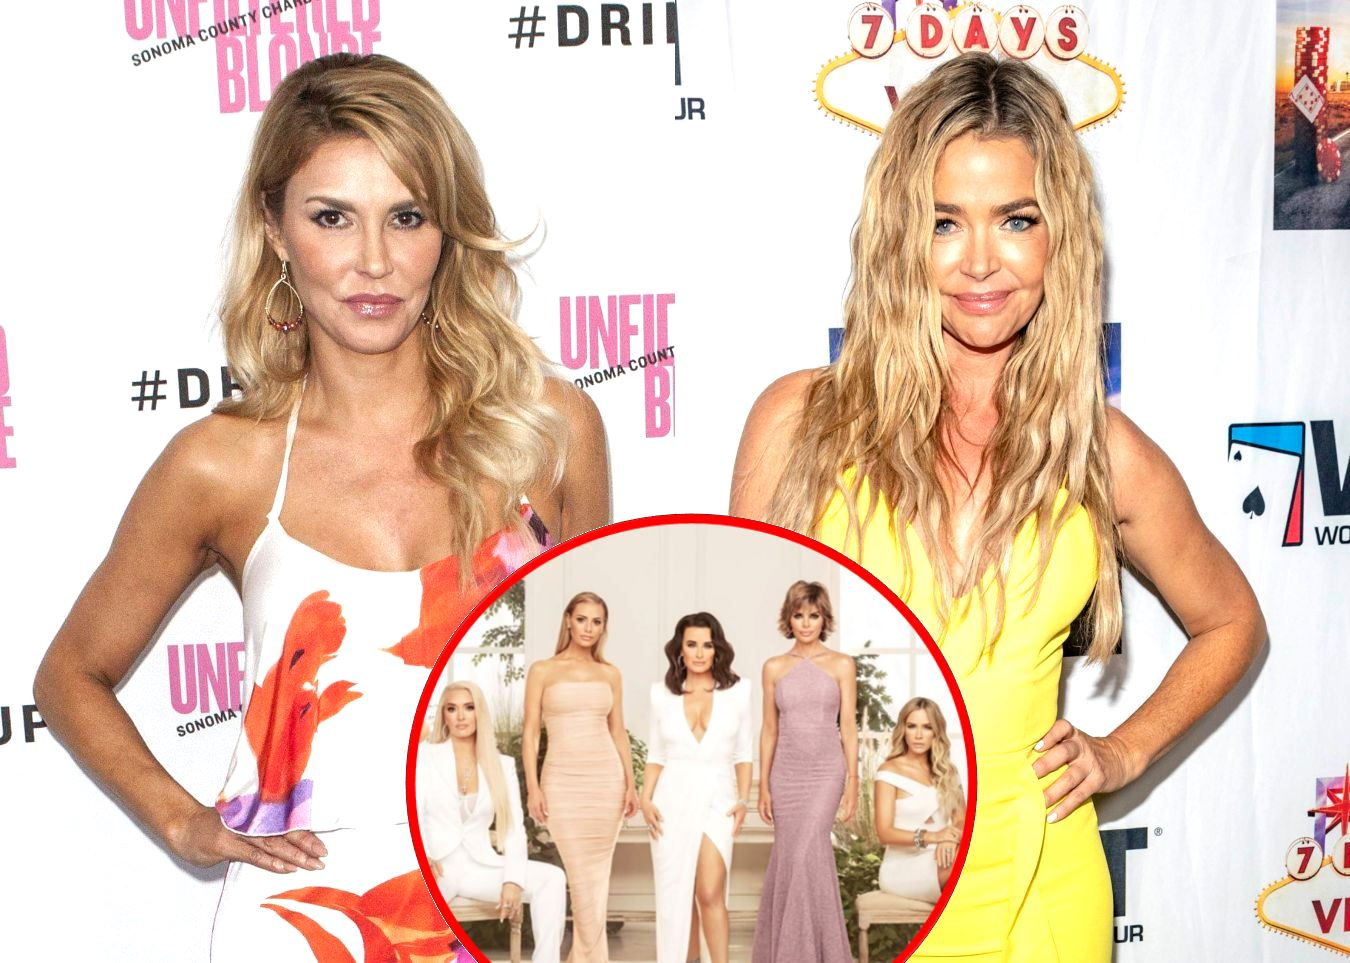 REPORT: Brandi Glanville Leaks Private Text Messages From Denise Richards to RHOBH Cast, Does Denise Have Any Friends Left on the Show?